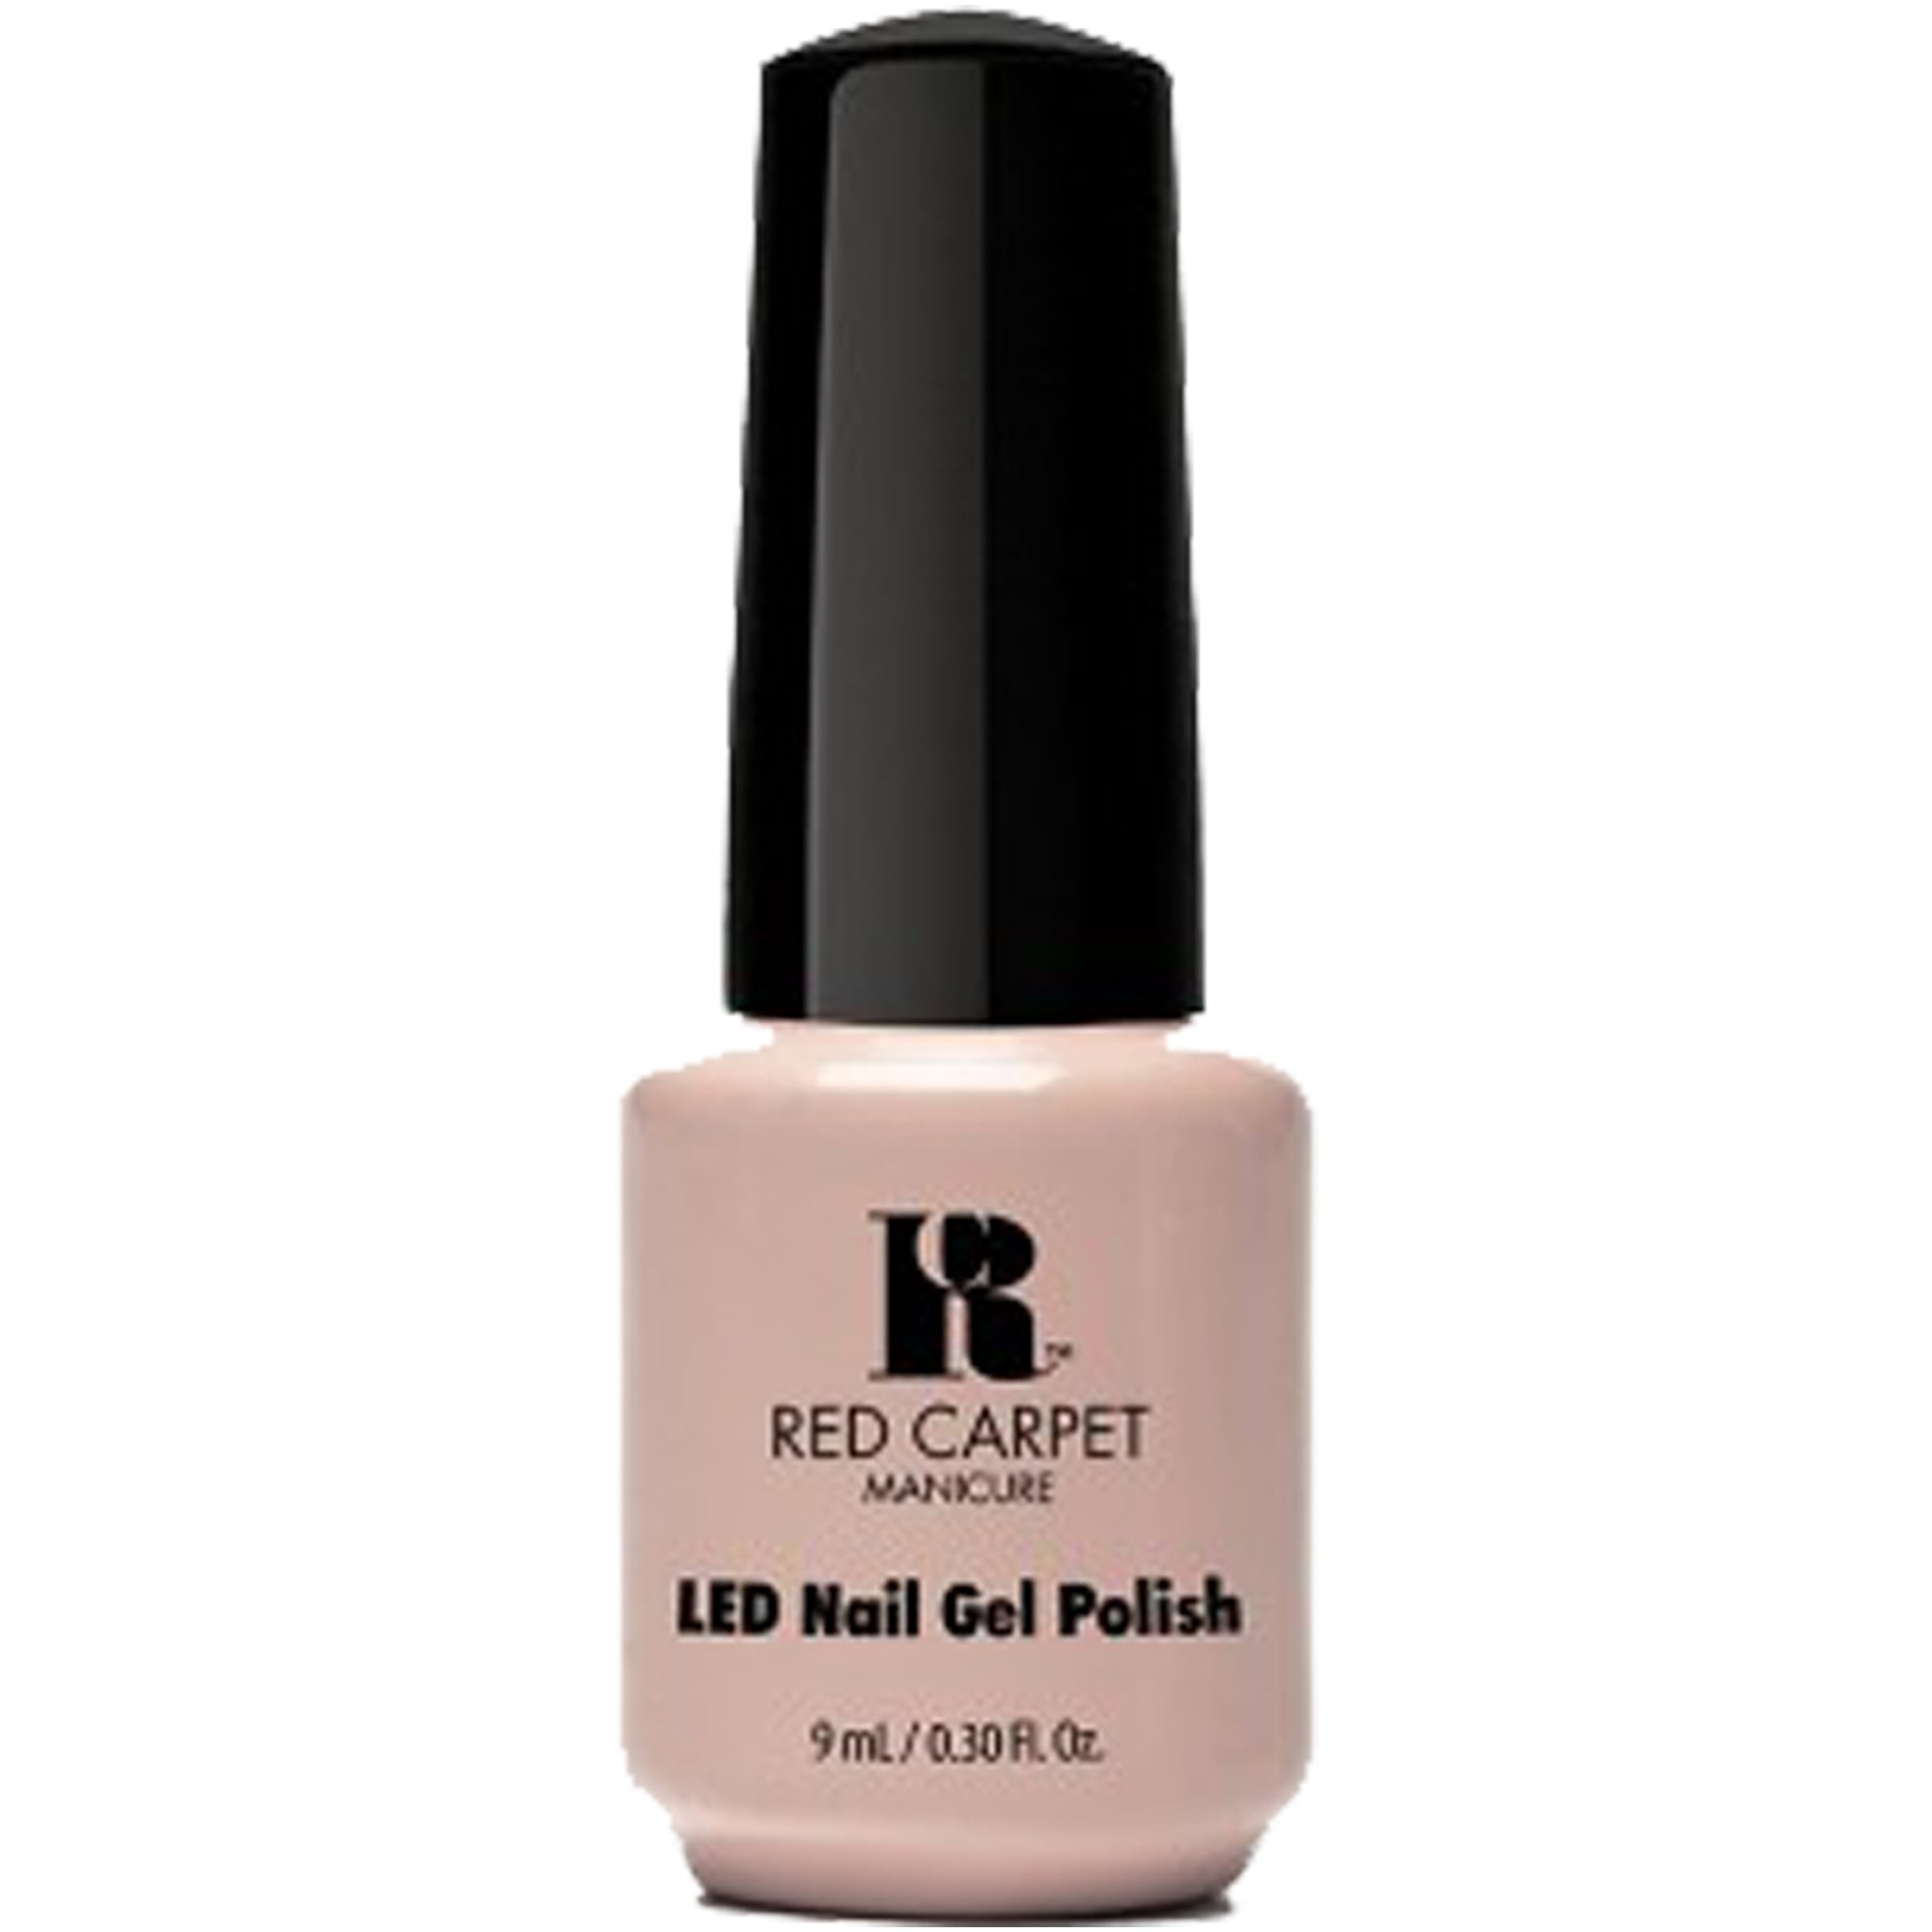 Red Carpet LED Gel Nail Polish - Candid Moment 9ml | Professional Gels